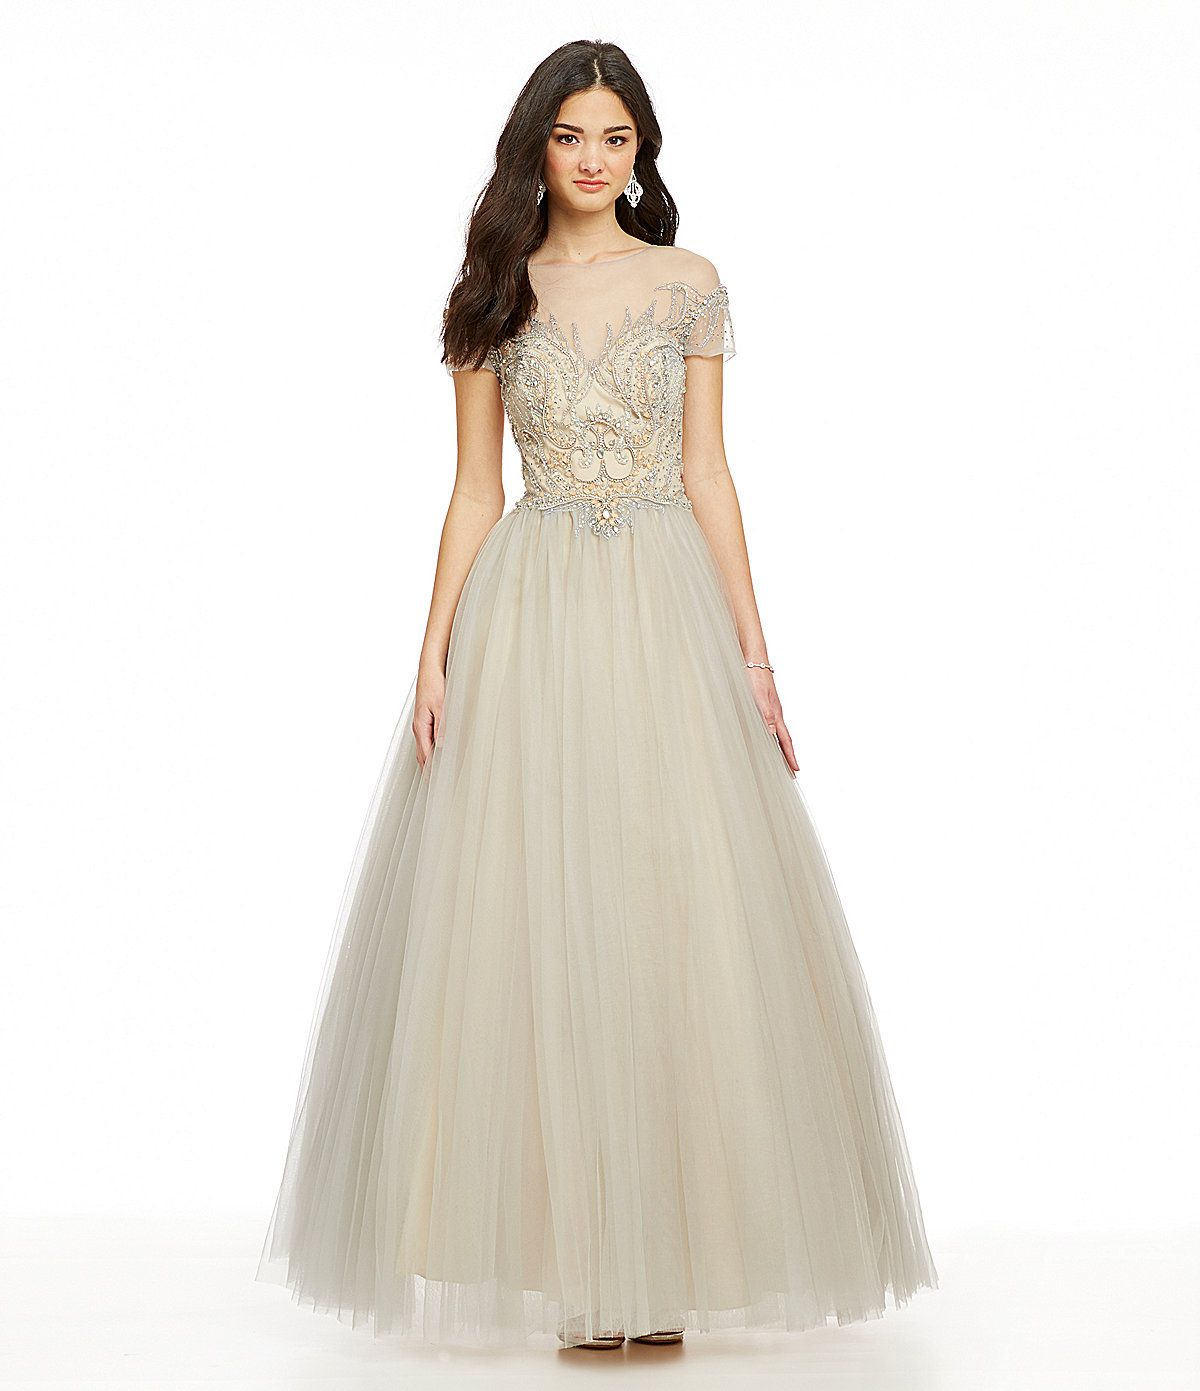 Glamour by Terani Couture Illusion T-Shirt Ball Gown | Dillards.com ...